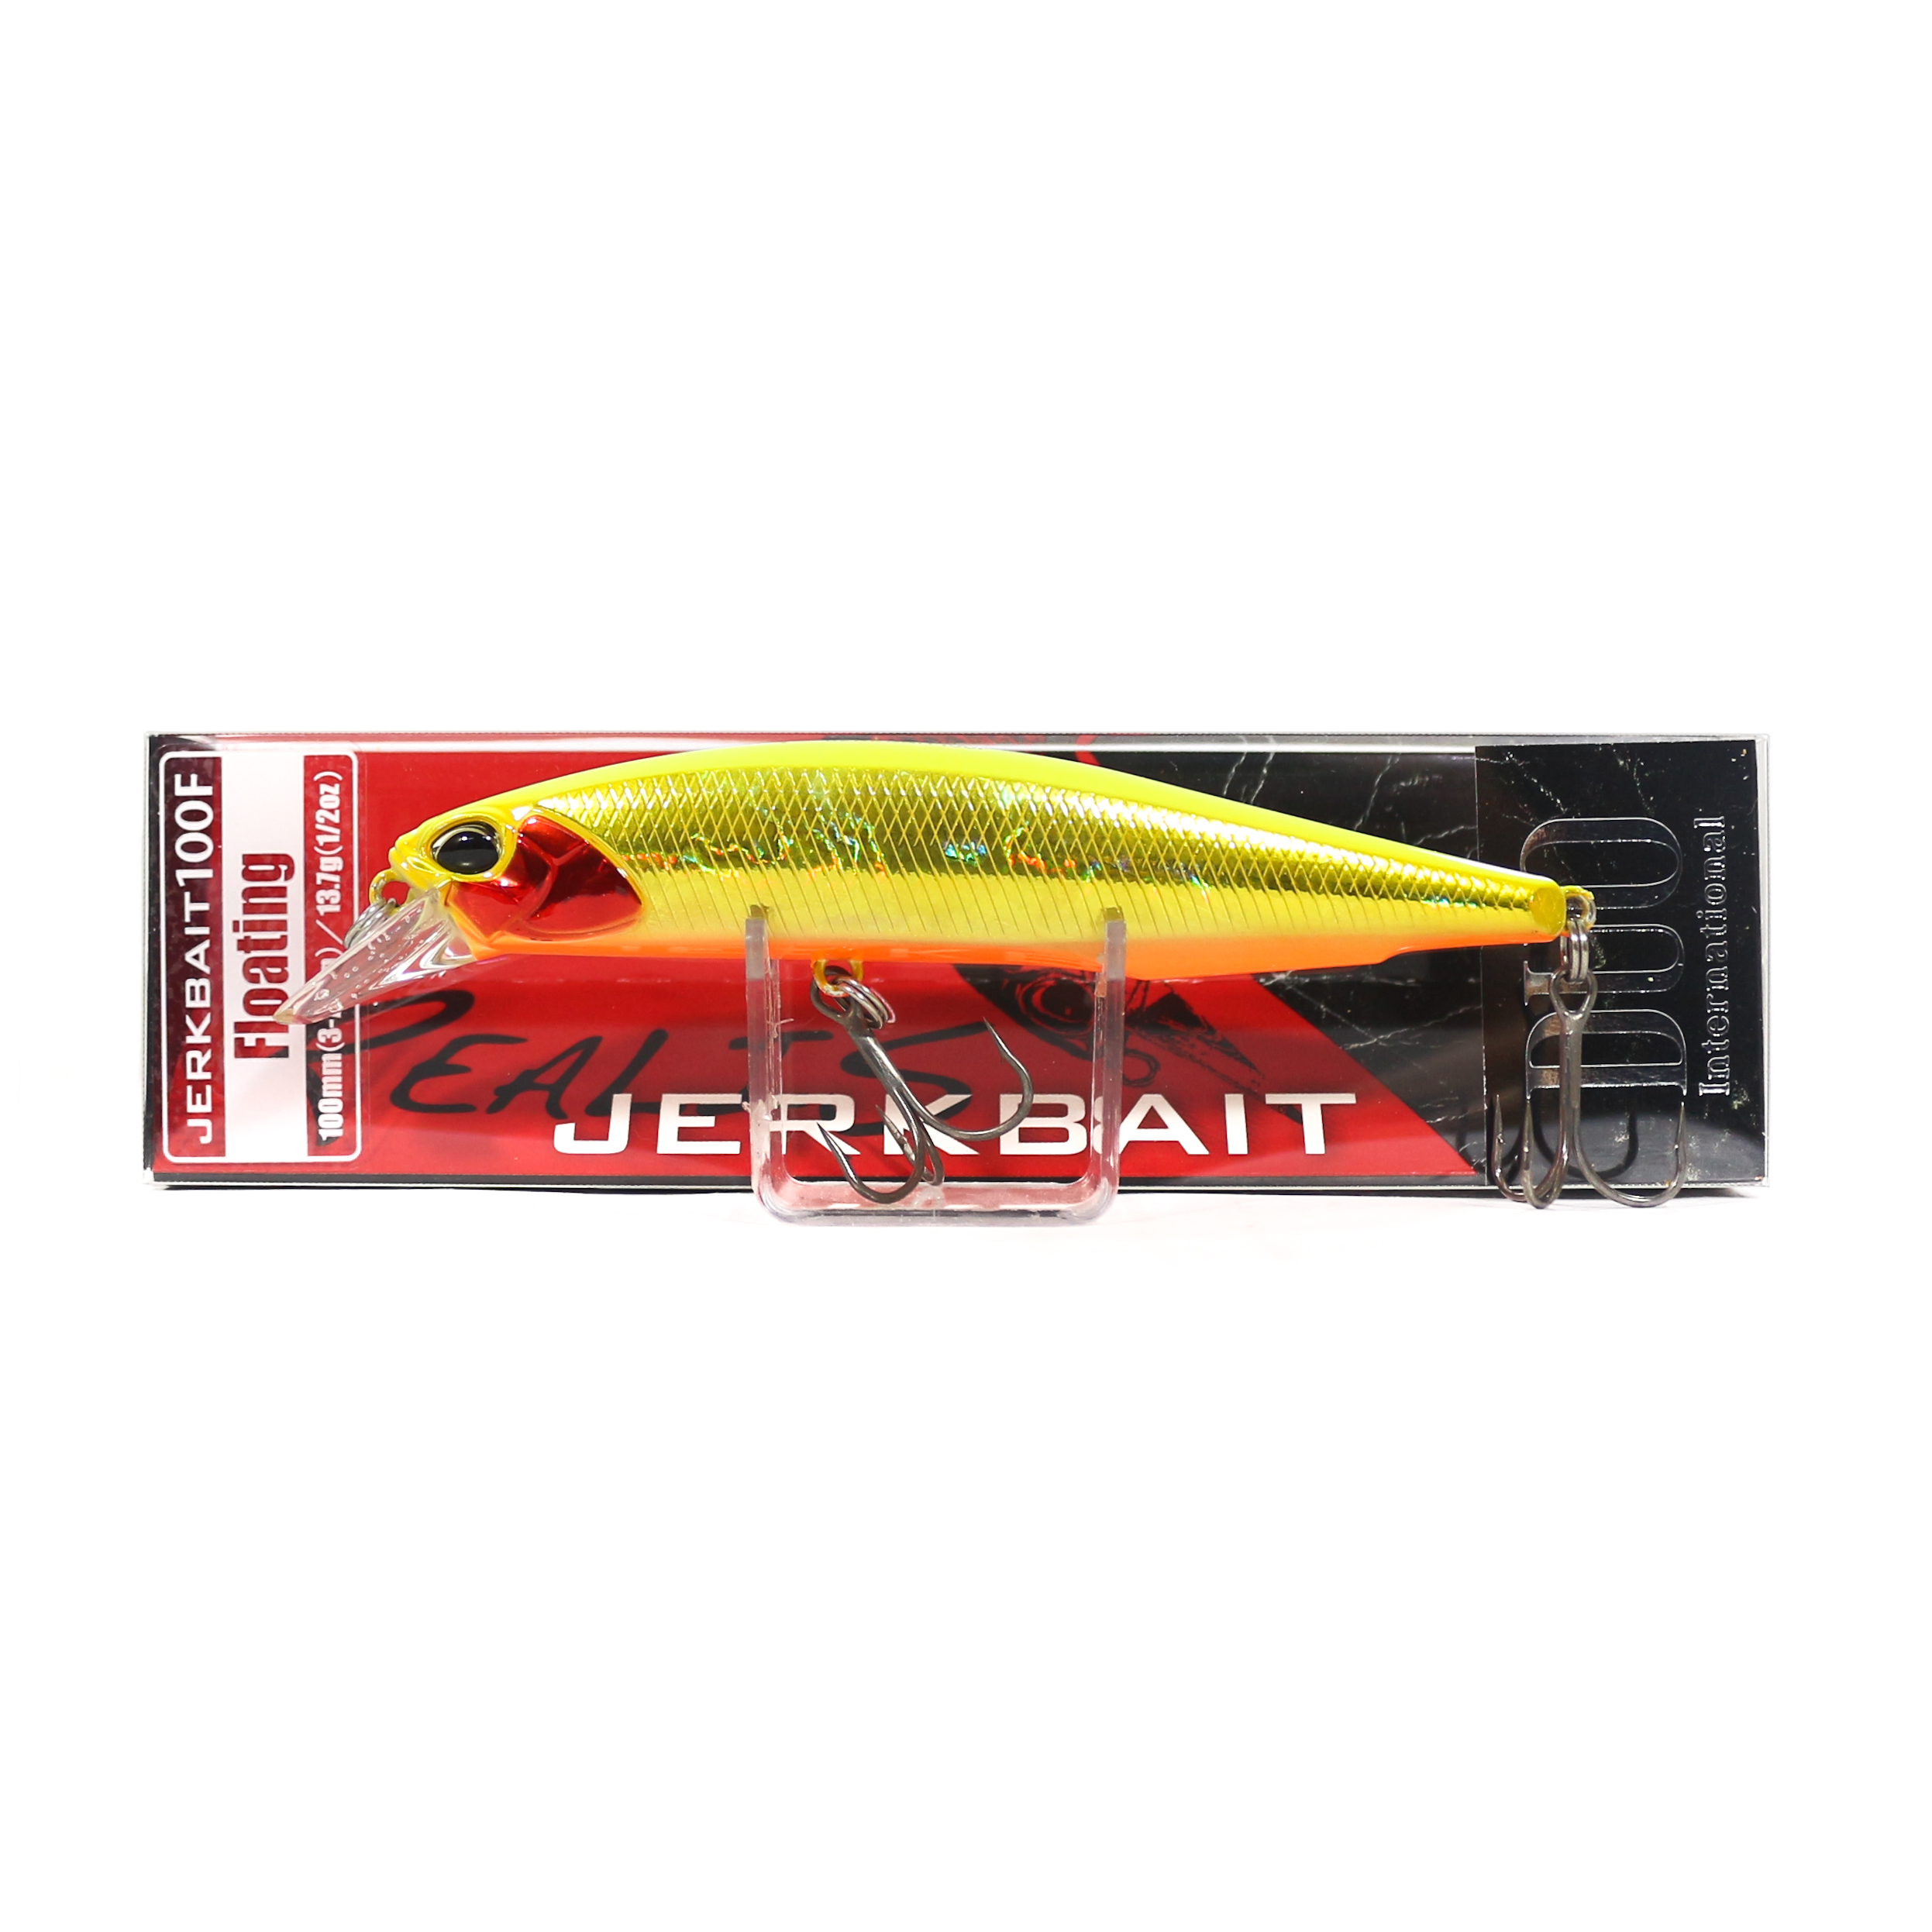 Duo Realis Jerkbait 100F Floating Lure ADA3121 (8492)